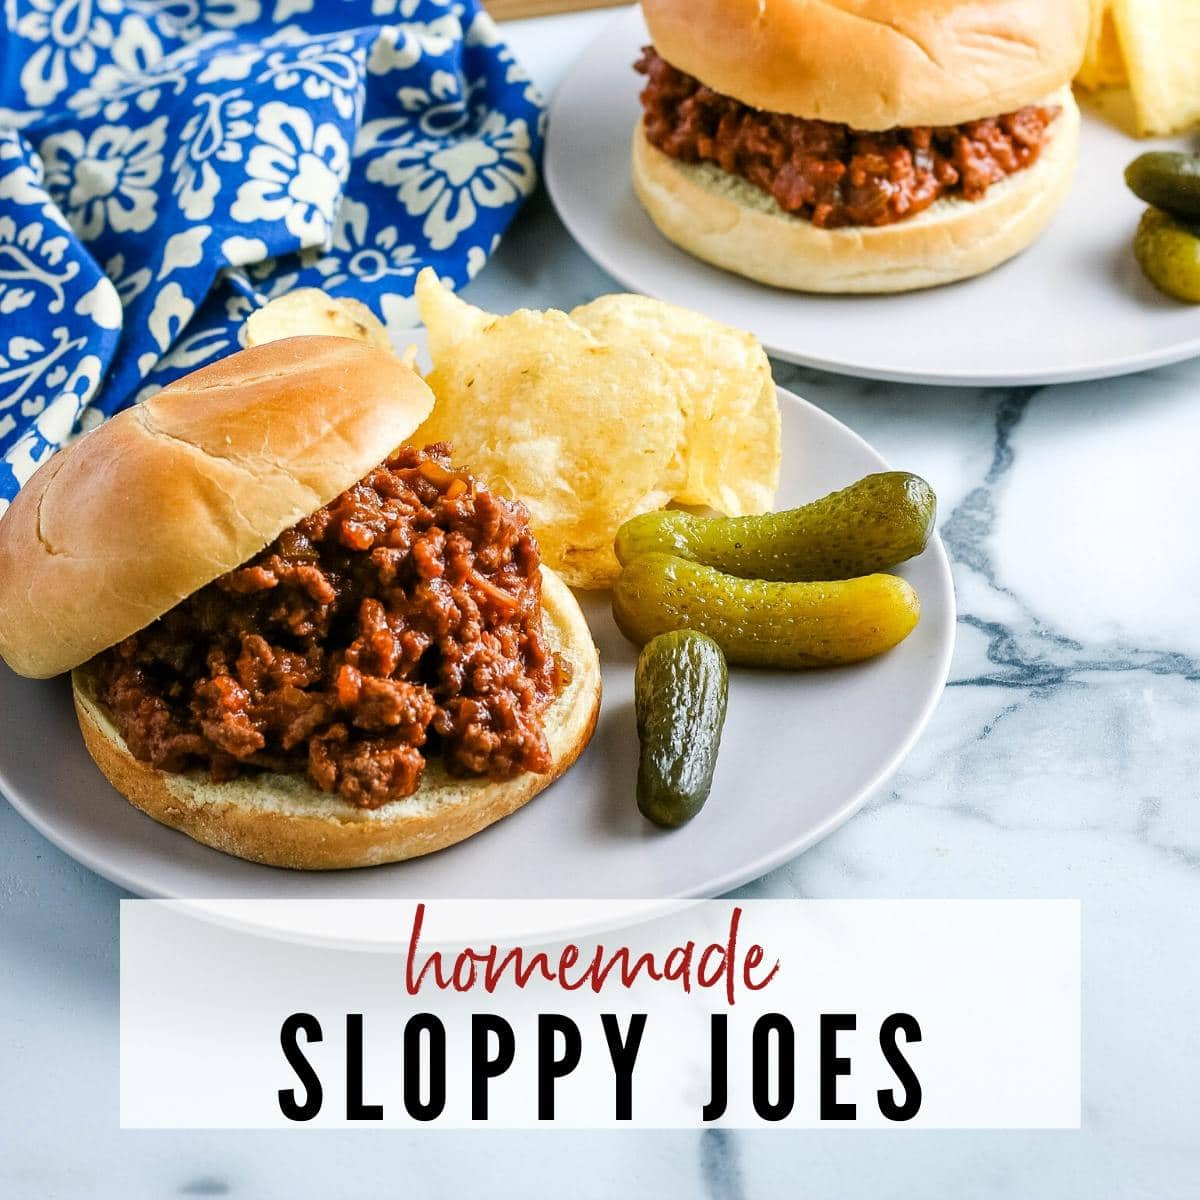 Sloppy Joes with chips and pickles on a white plate with blue flower napkin